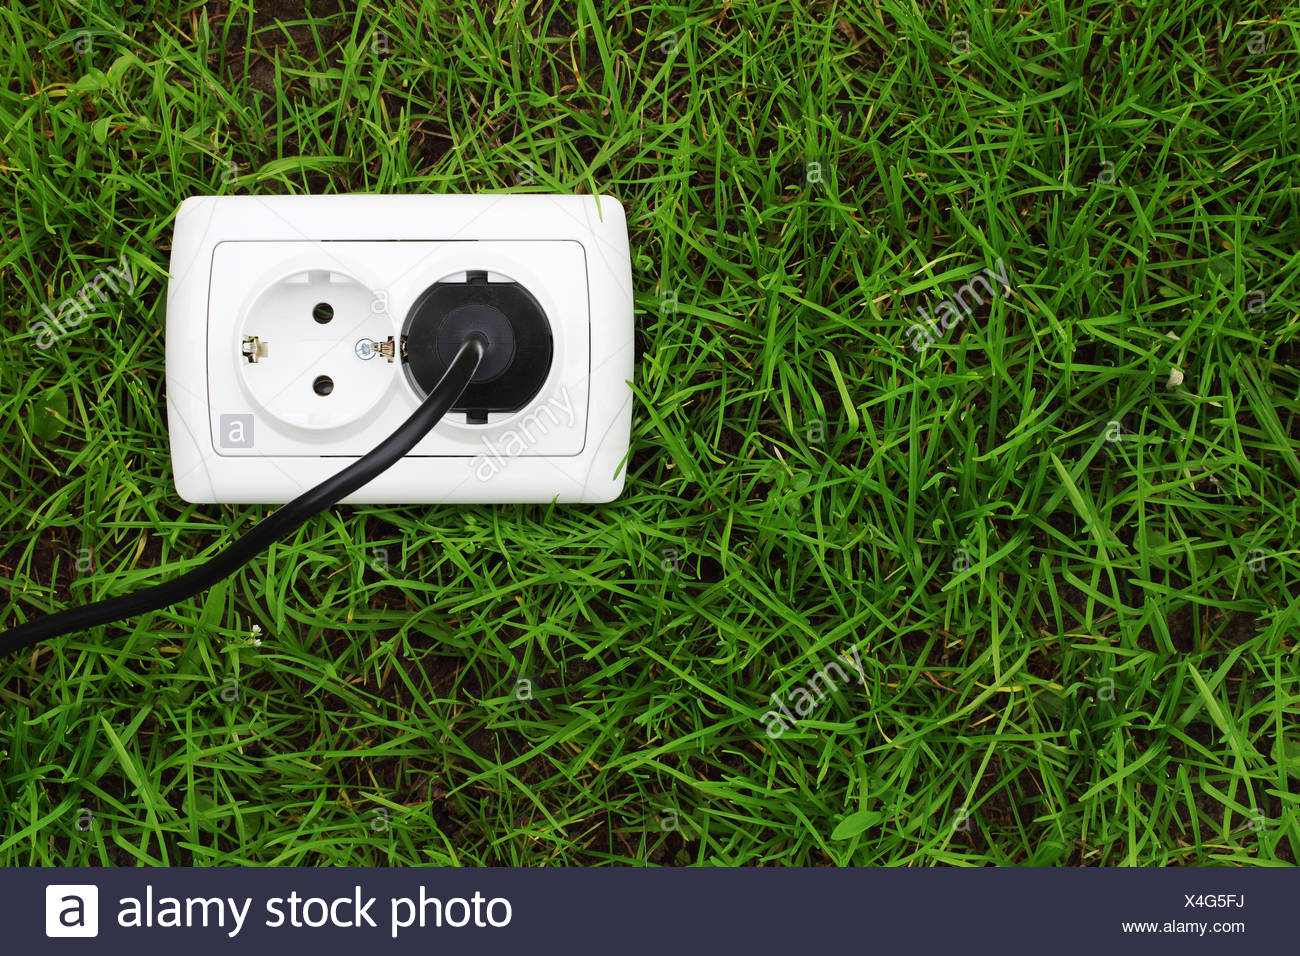 electric power receptacle on a green grass background - Stock Image